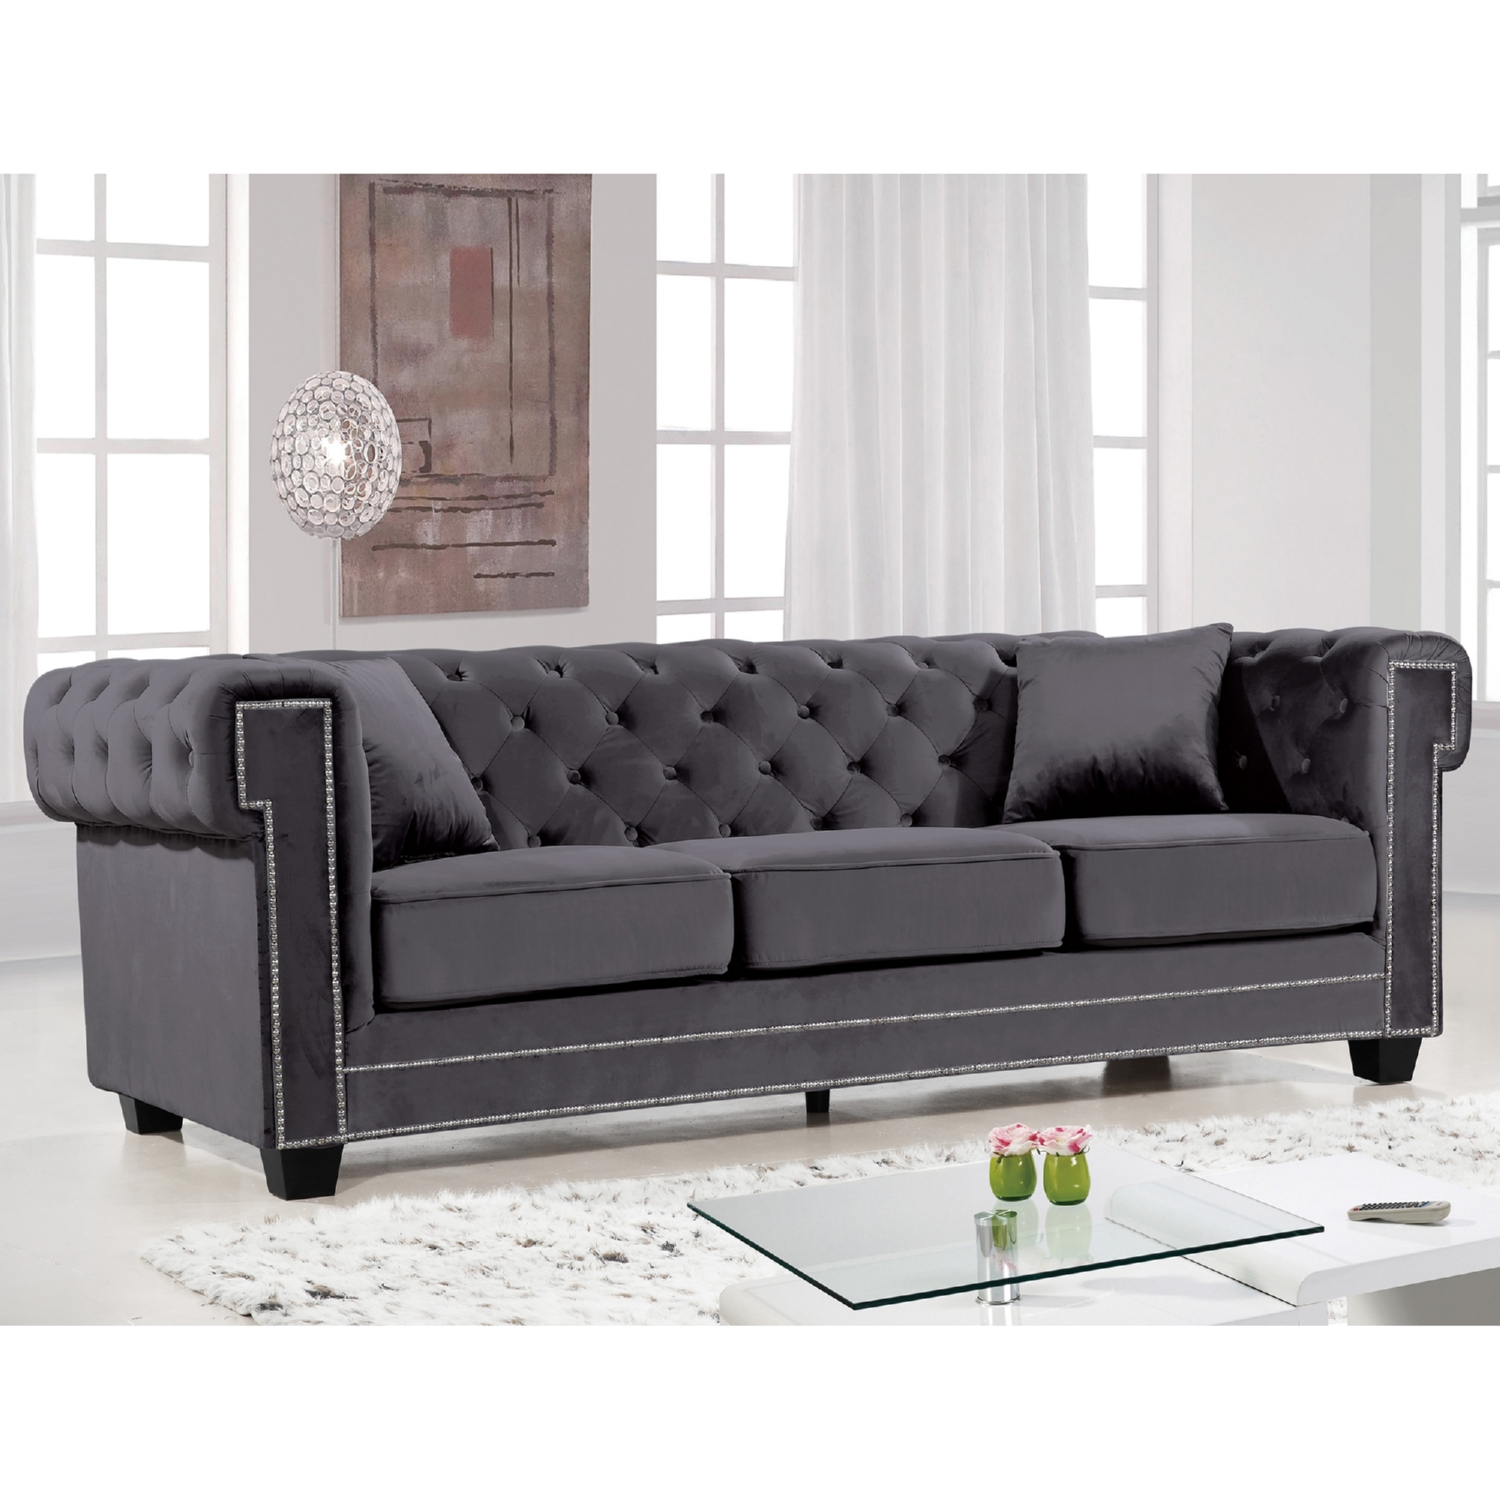 Meridian Furniture 614Grey S Bowery Grey Tufted Velvet Sofa w